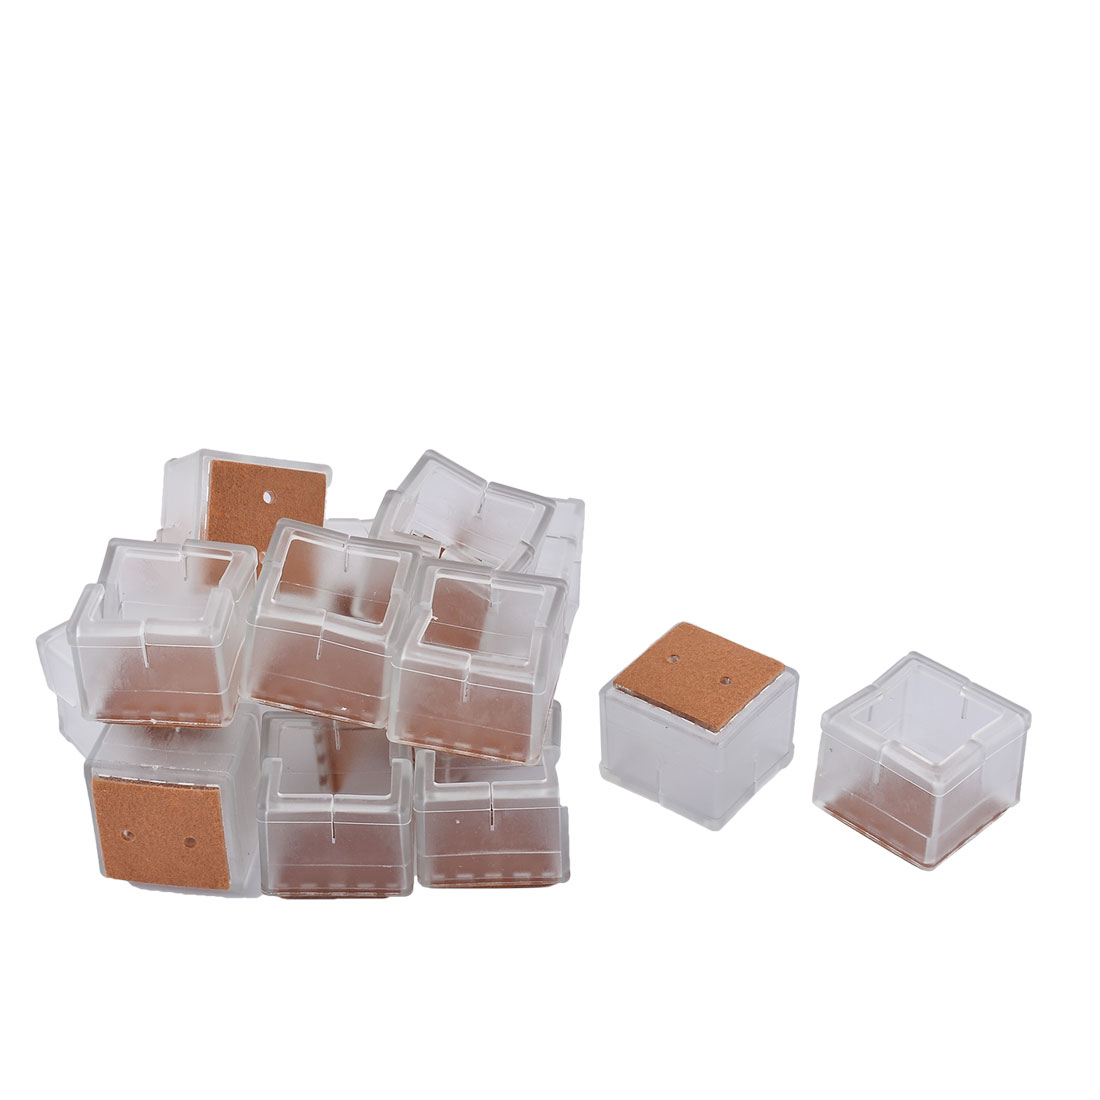 Silicone Square Shaped Table Leg End Cap Cover Clear 3.8 x 3.8 x 3.3cm 16pcs